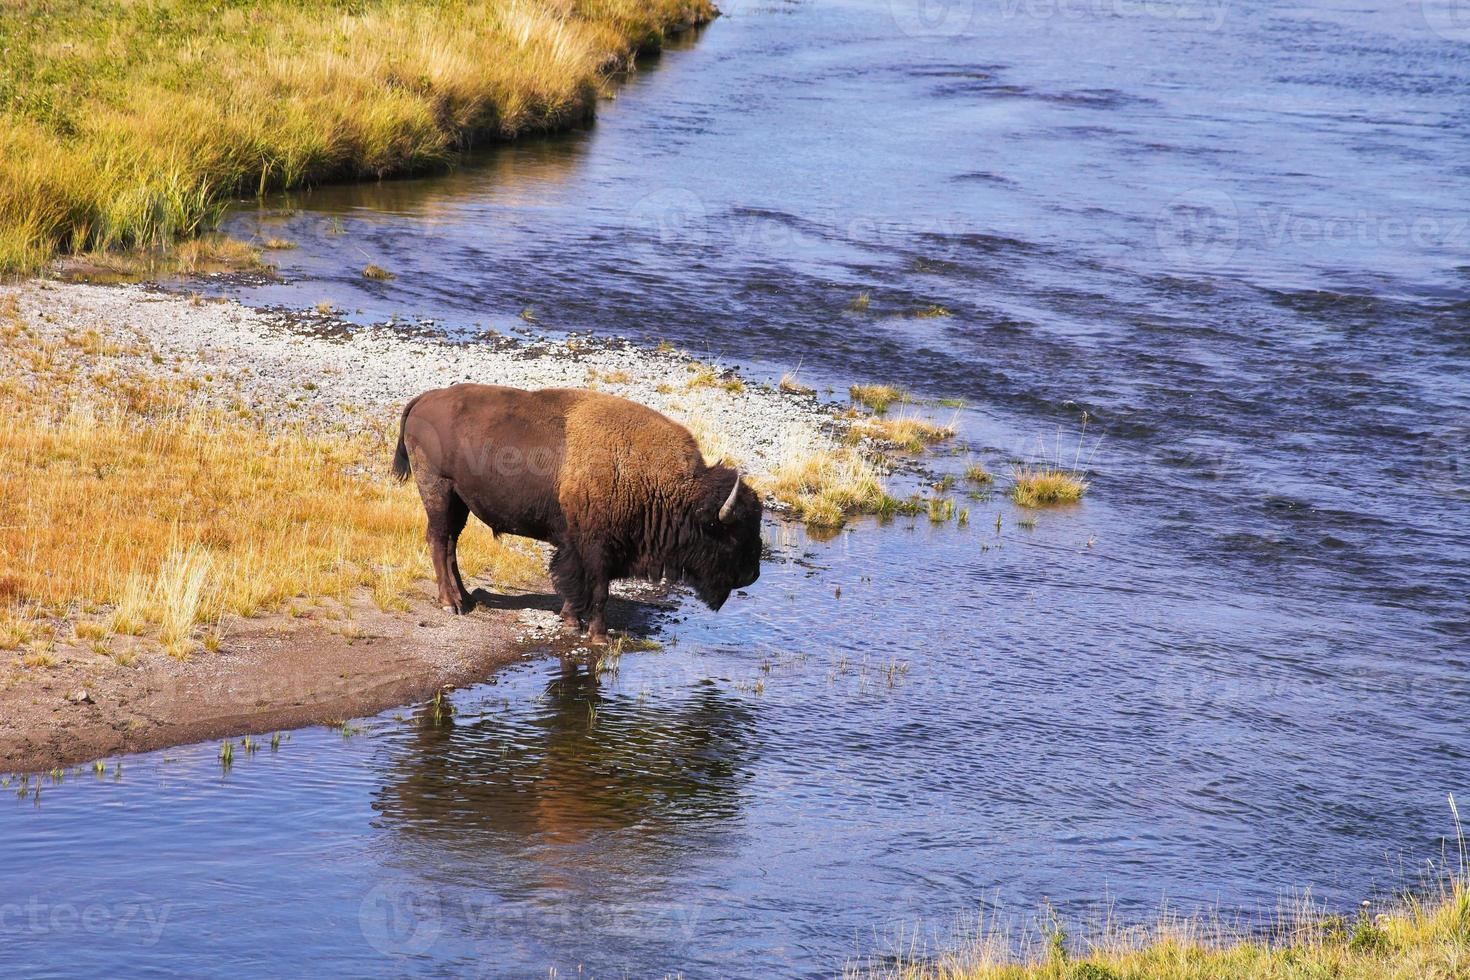 The bison drinks water photo